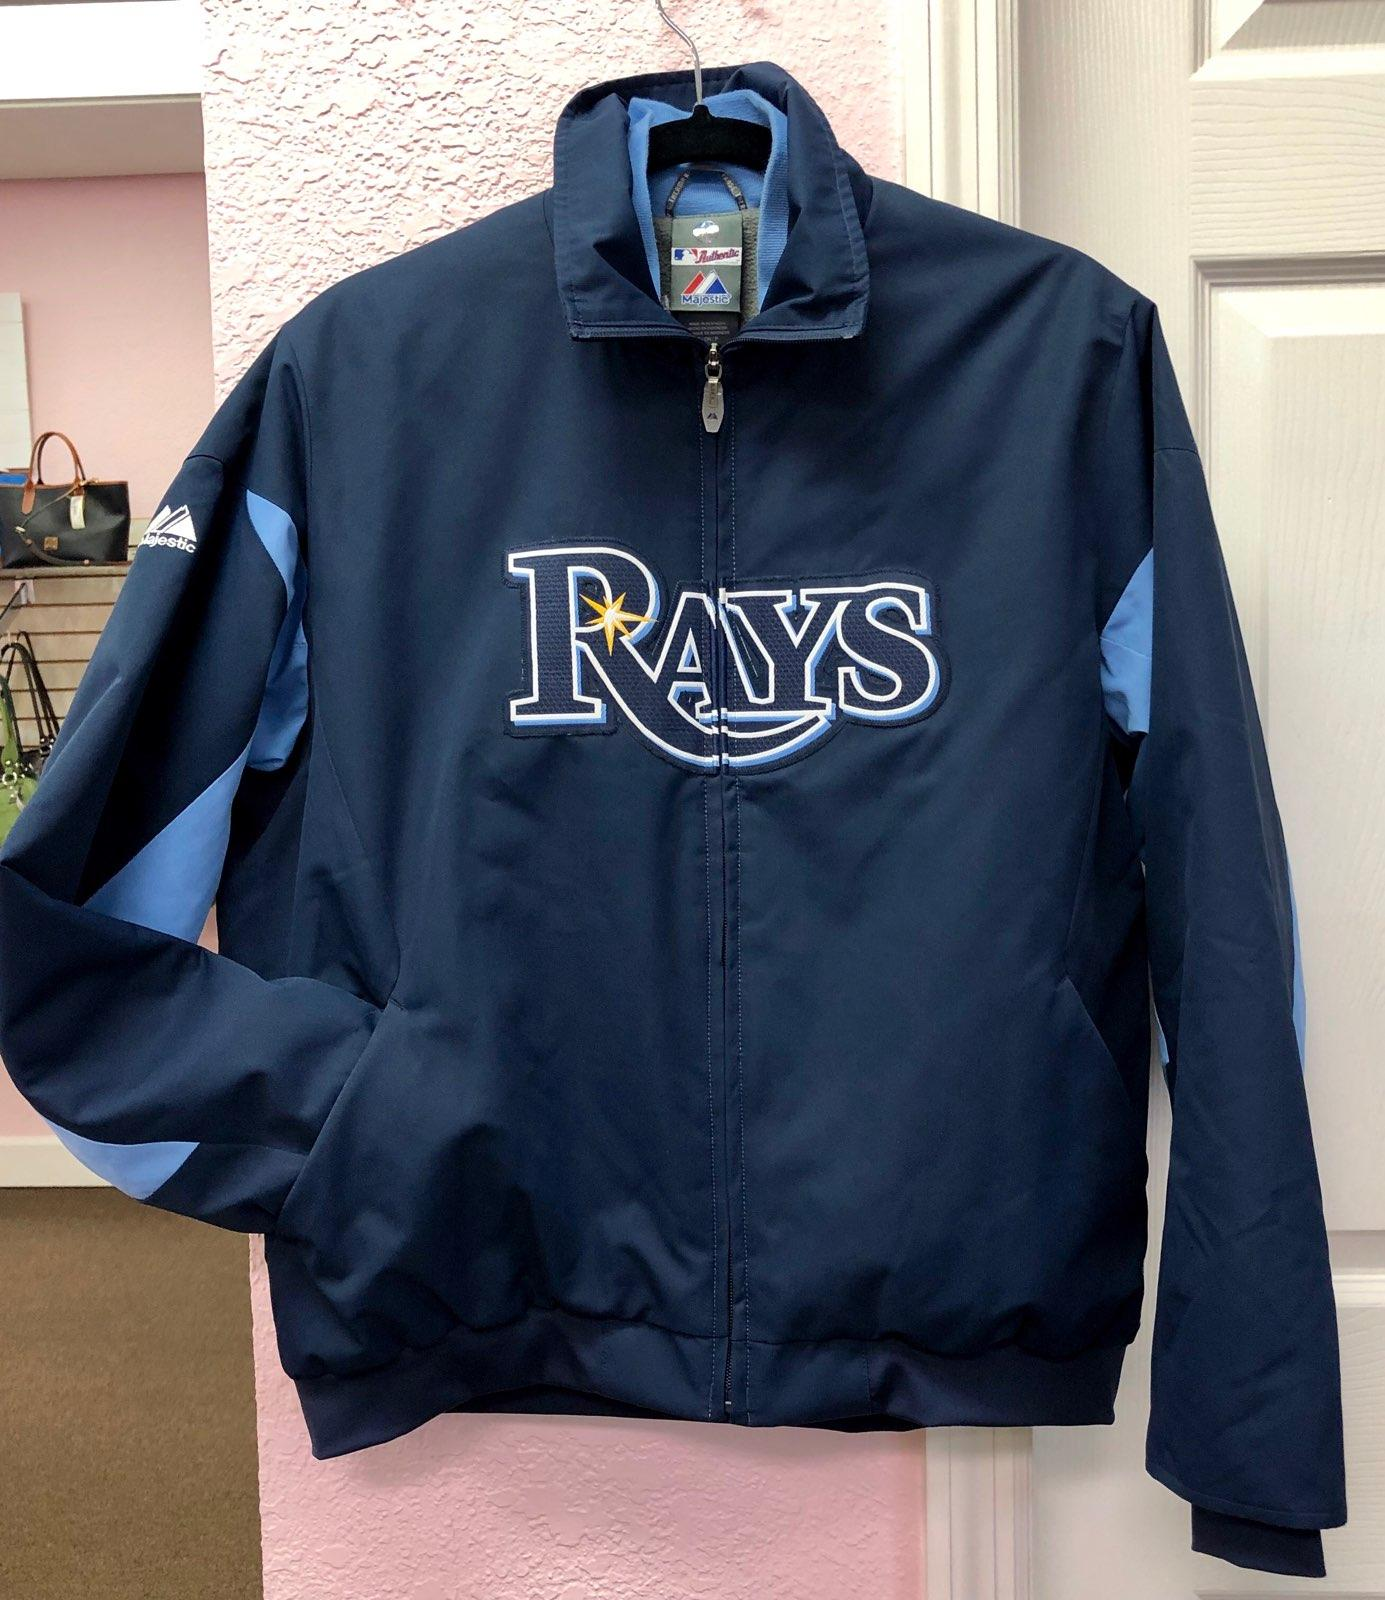 RAYS (authentic), Blue, Size: S<br /> Plus Tax and shipping